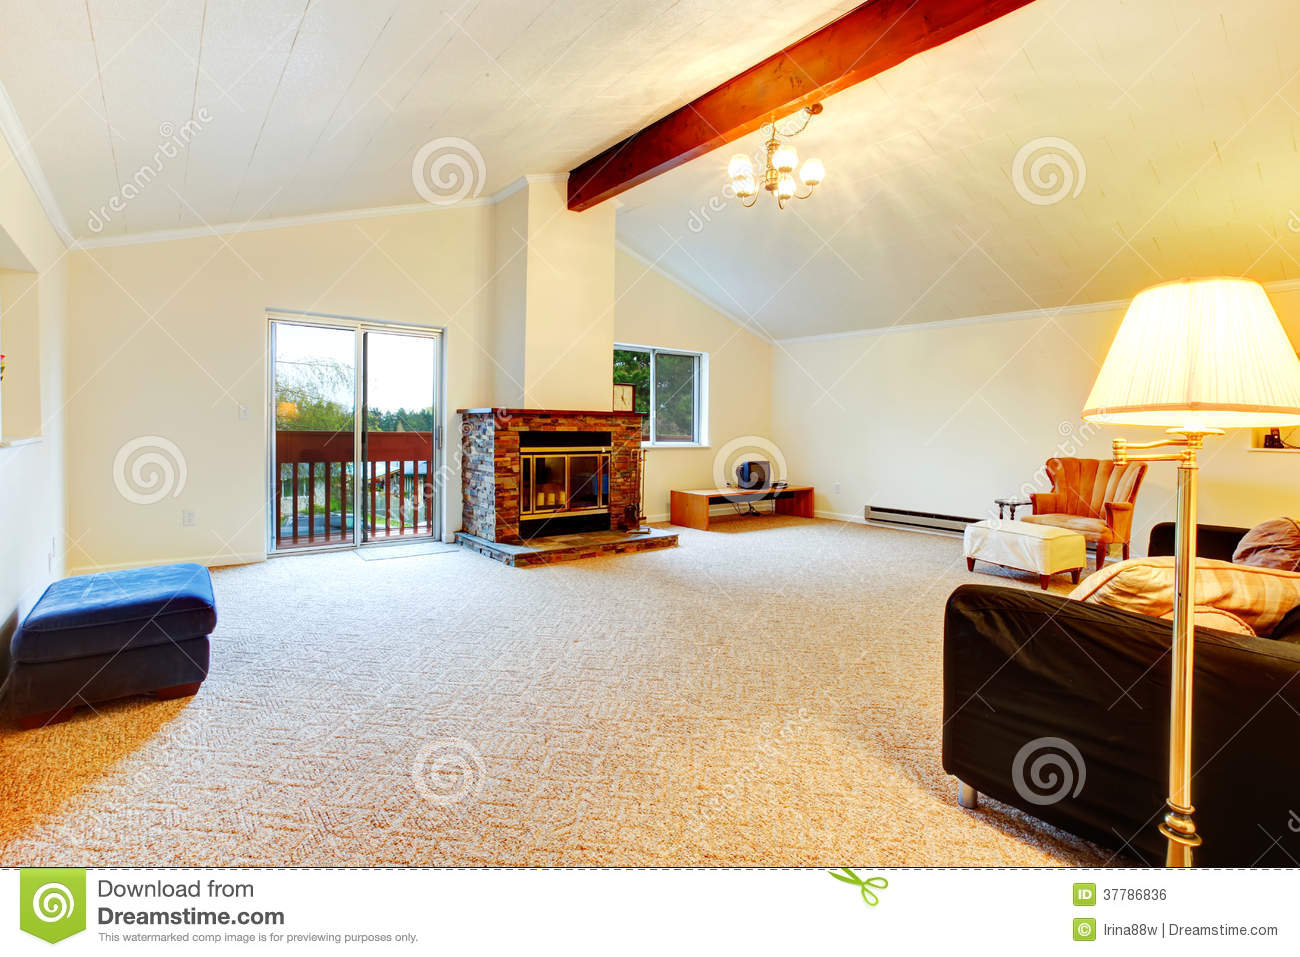 Bright living room with vaulted ceiling and beams, carpet floor, cozy ...